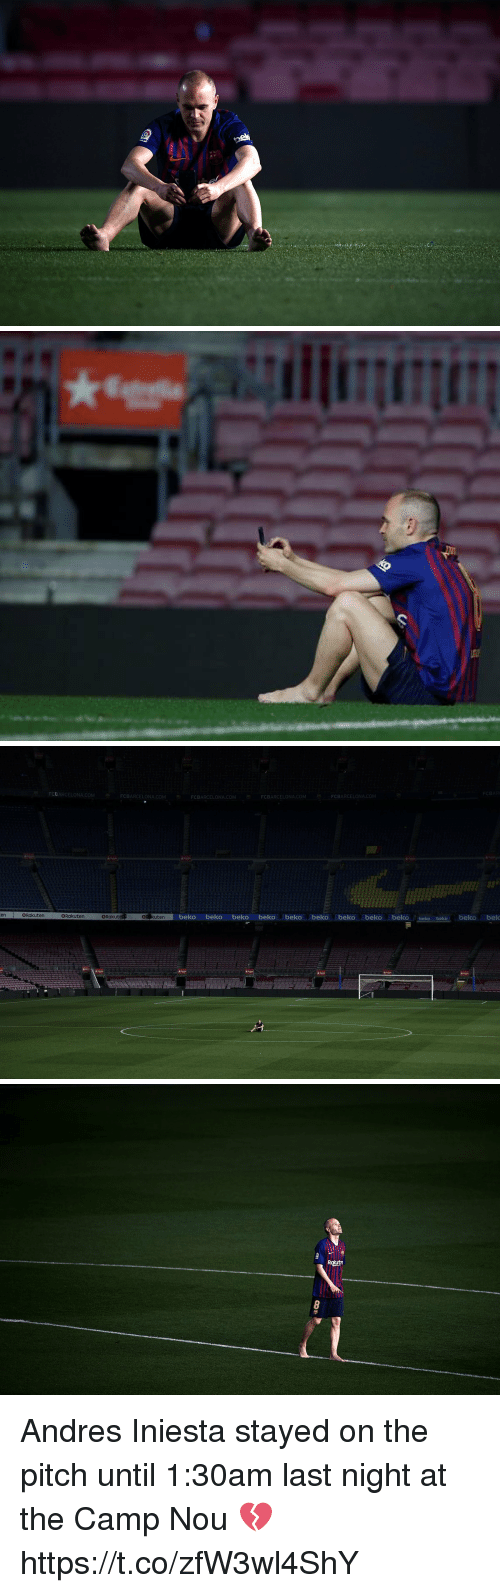 Memes, Andres Iniesta, and 🤖: FCBARCELONA.COM  FCBARCELONA.COM  FCBARCELONA.COM  FCBARCELONA.COM  FCBARCELONA.COM  enRakuten  eR kuten  beko beko beko beko beko beko beko beko beko beko beko beko bek  BRakuten  @Rakut   Rautn Andres Iniesta stayed on the pitch until 1:30am last night at the Camp Nou 💔 https://t.co/zfW3wl4ShY